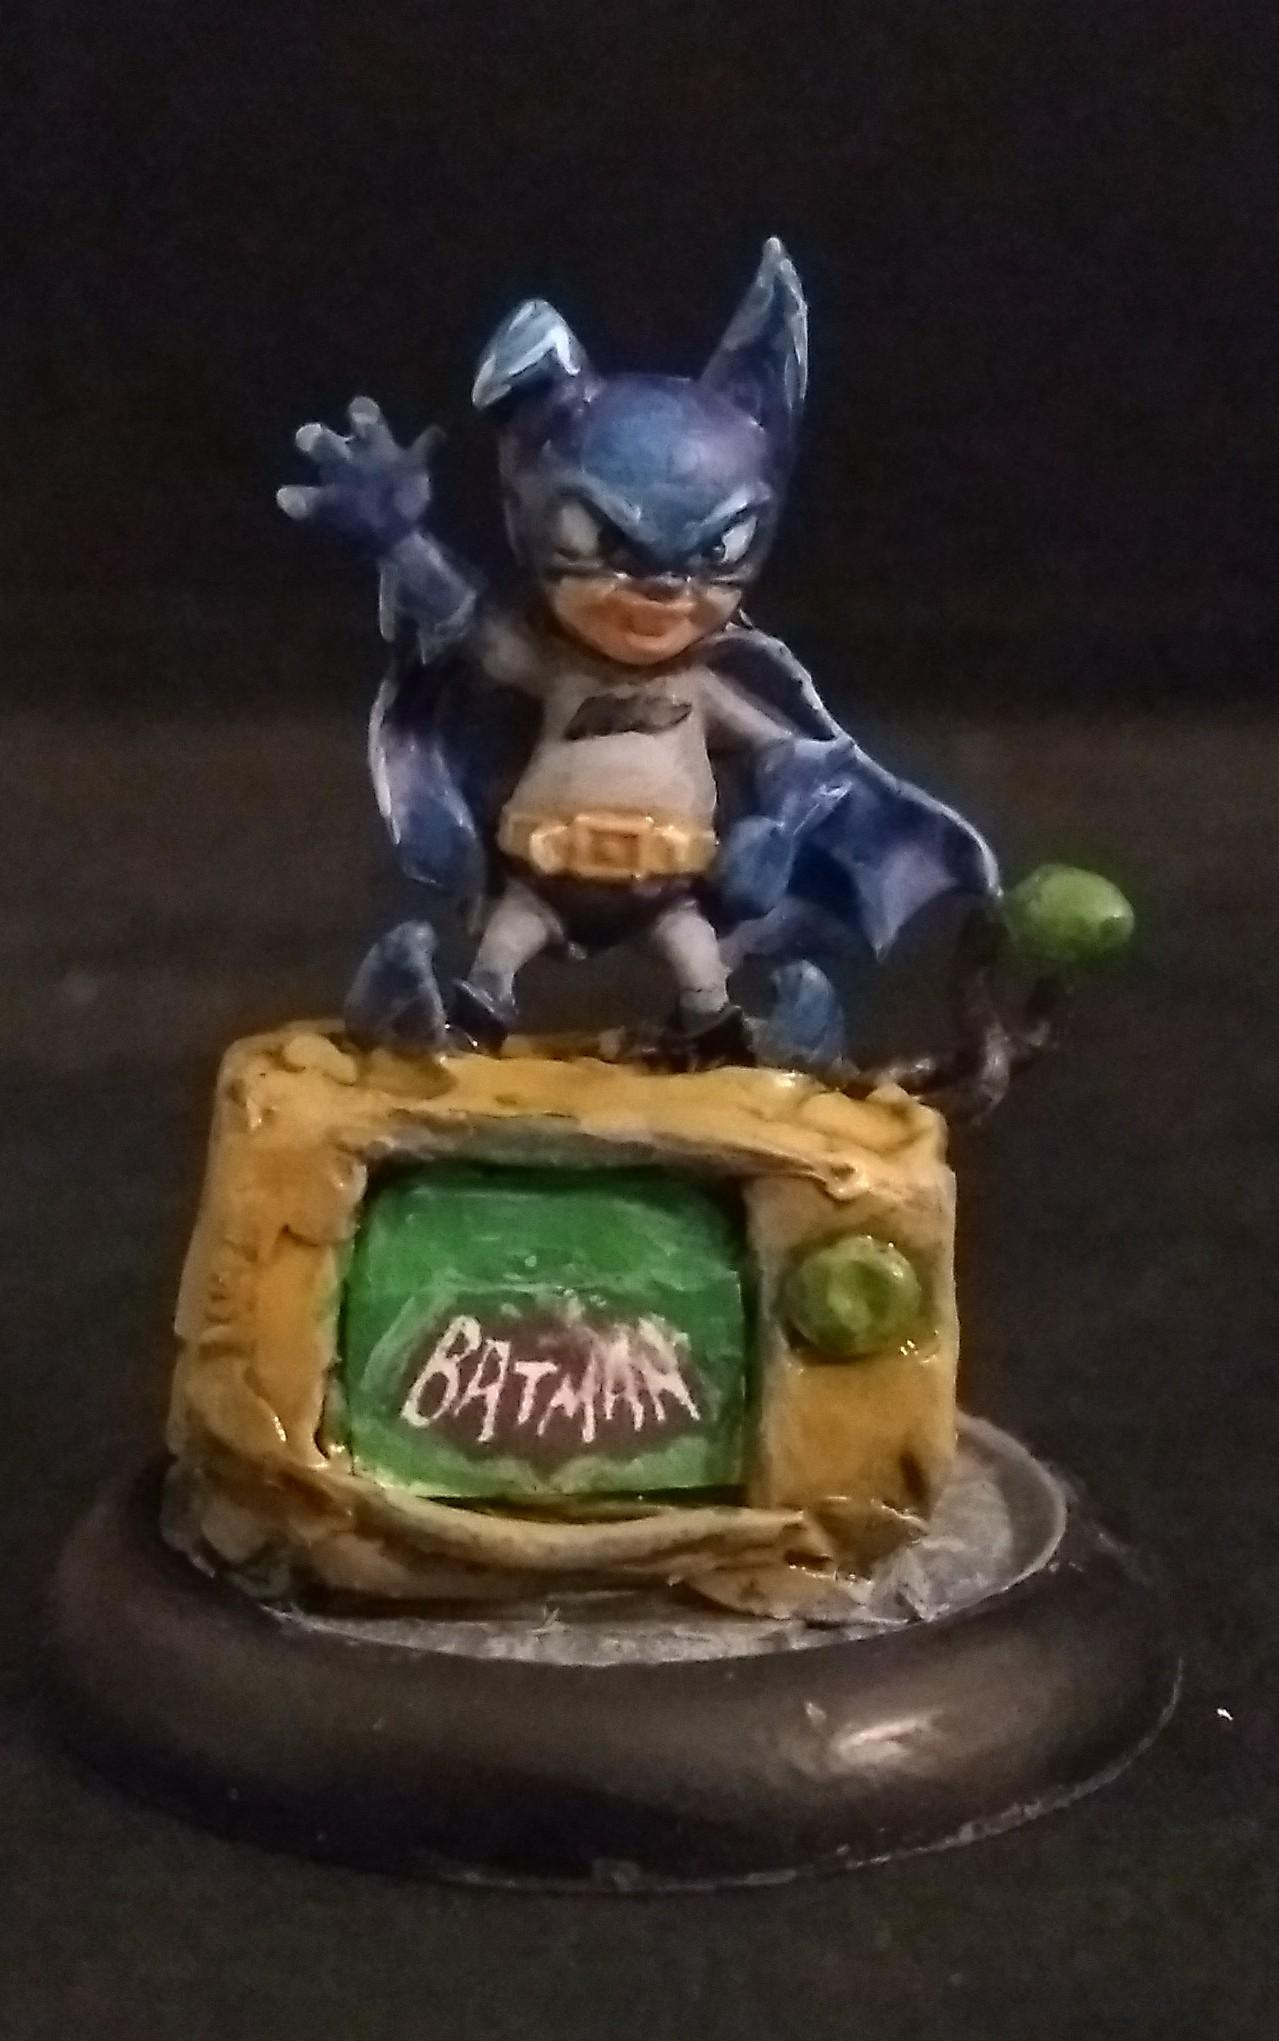 Batman, Bmg, Dcu, Dcumg, Imp, Knight Models, Superhero, Tv